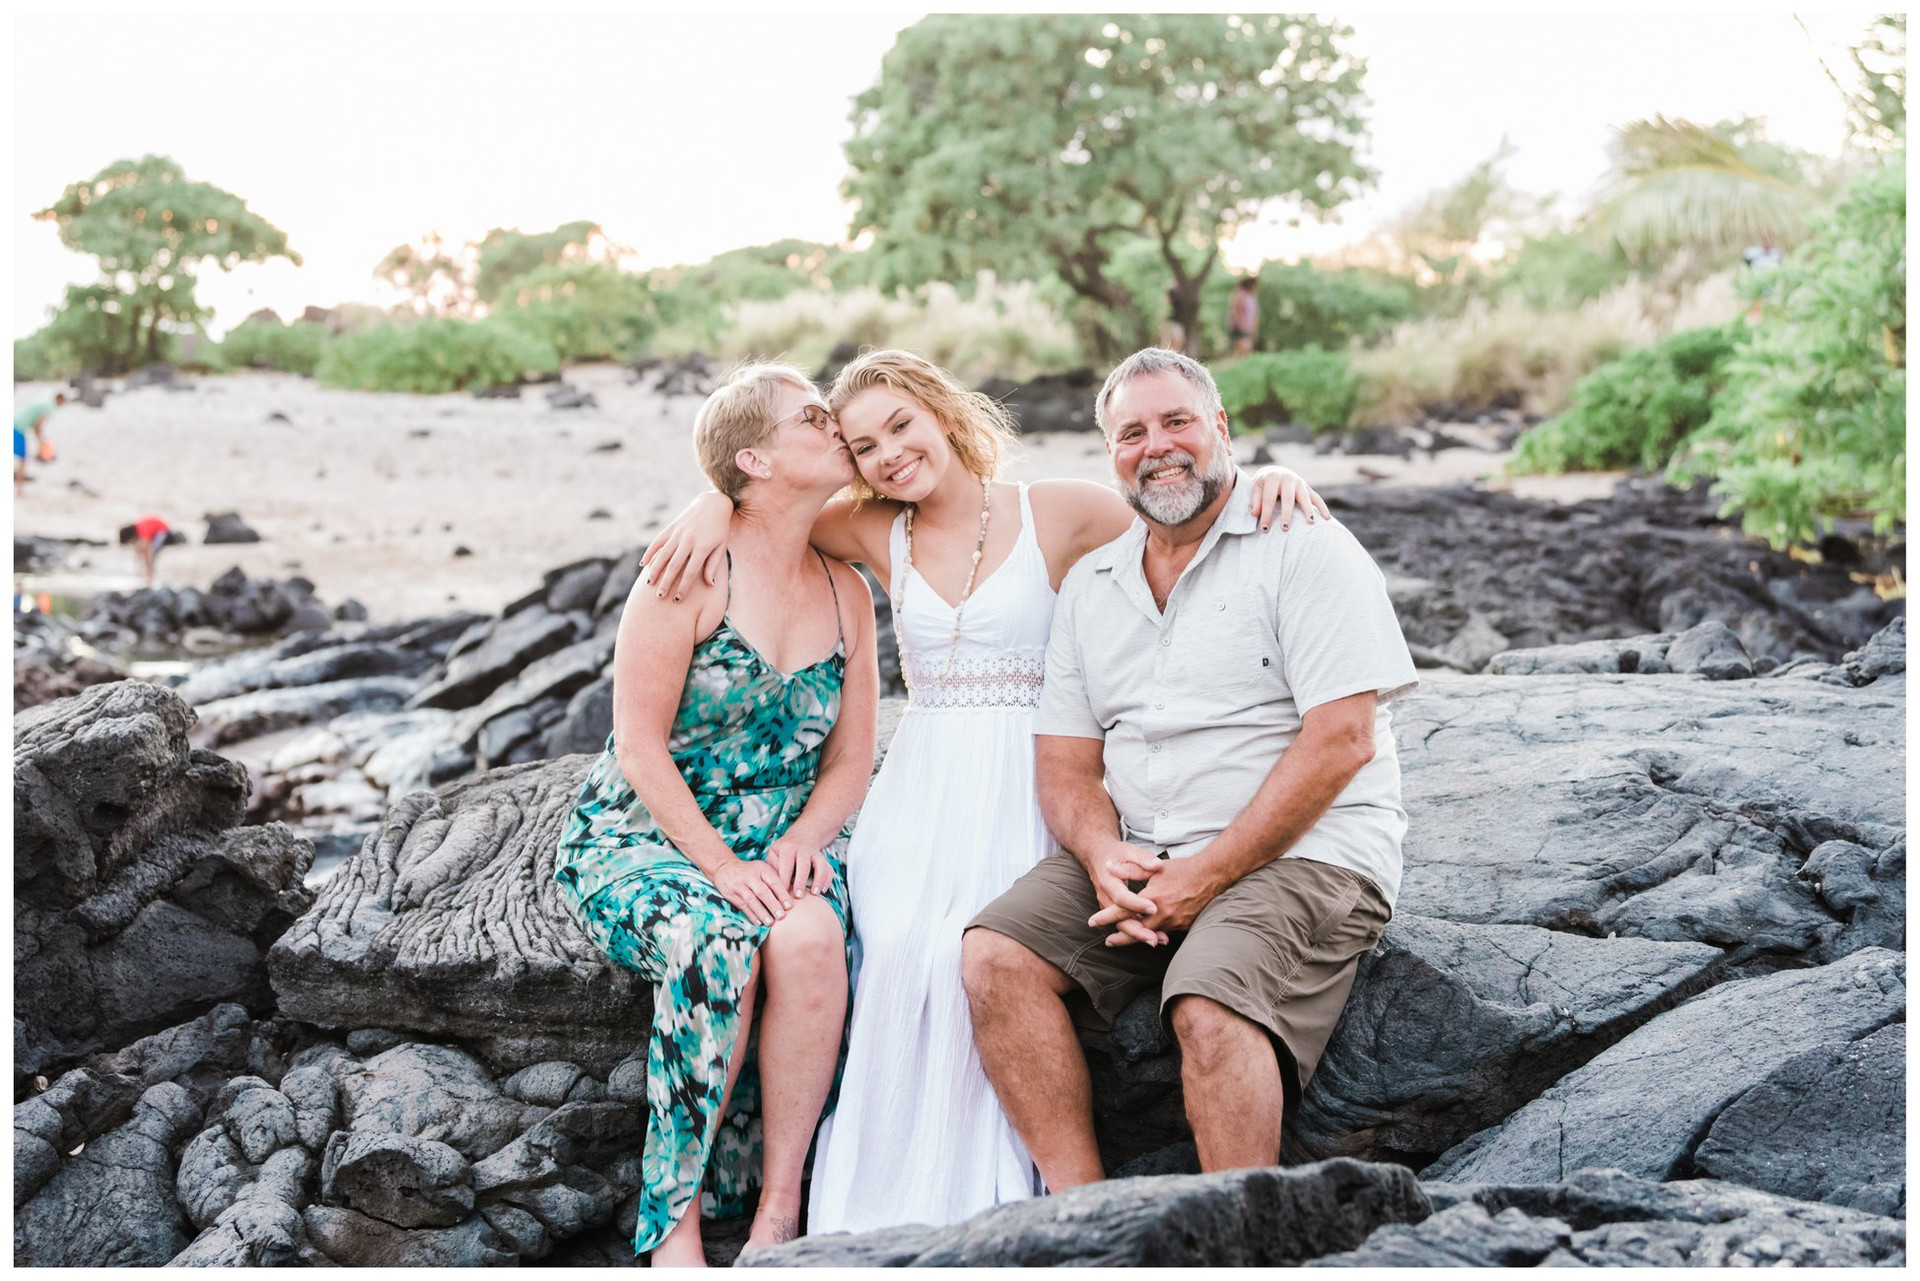 Big Island Family Photographers 29.jpg